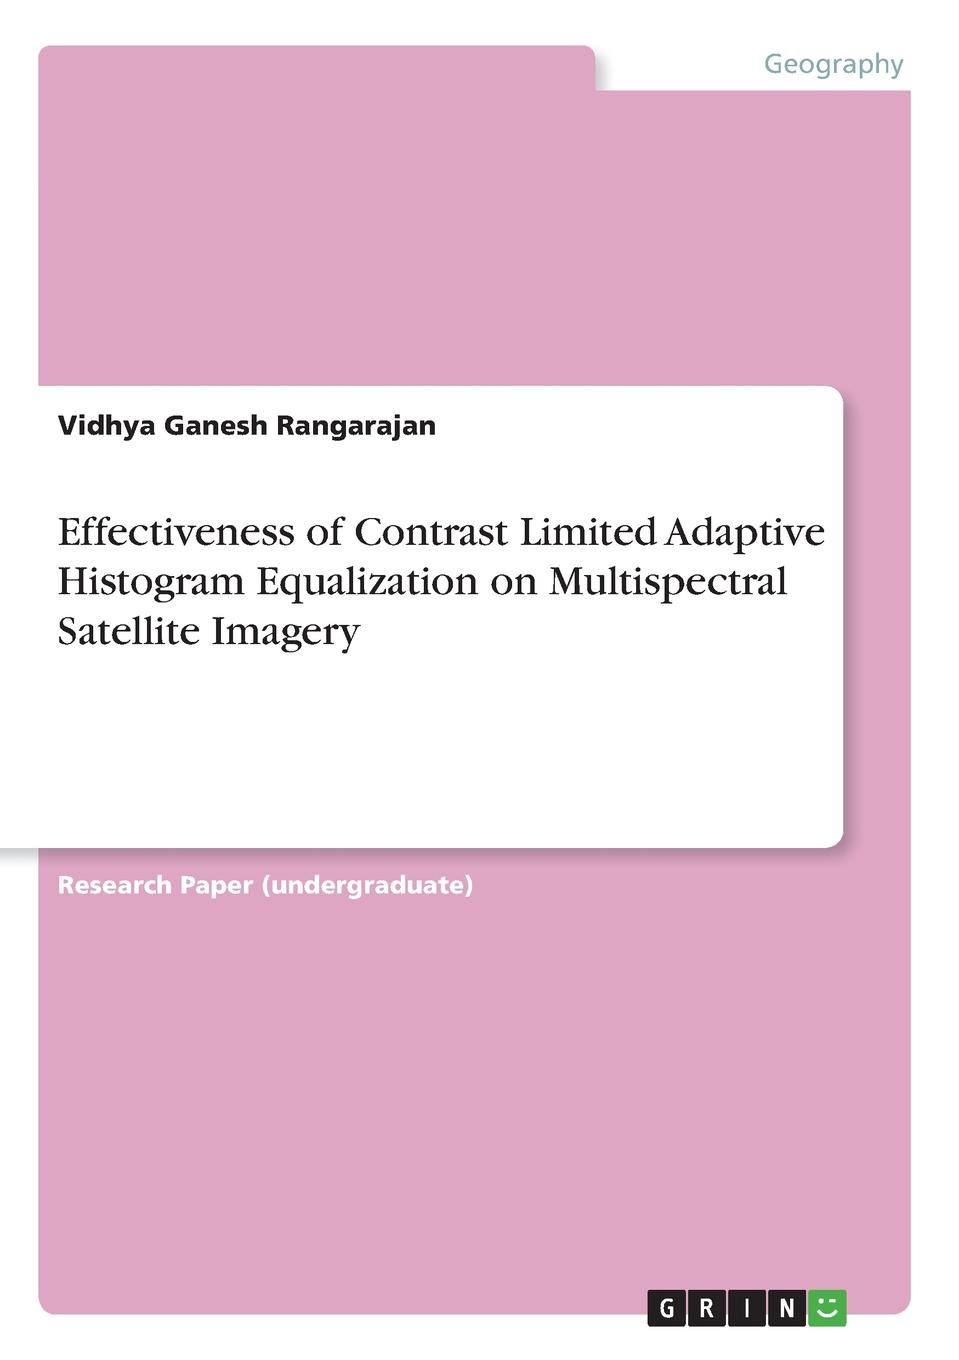 Vidhya Ganesh Rangarajan Effectiveness of Contrast Limited Adaptive Histogram Equalization on Multispectral Satellite Imagery narayanan meyyappan and rangasamy parthiban a novel separation technique using hydrotropes